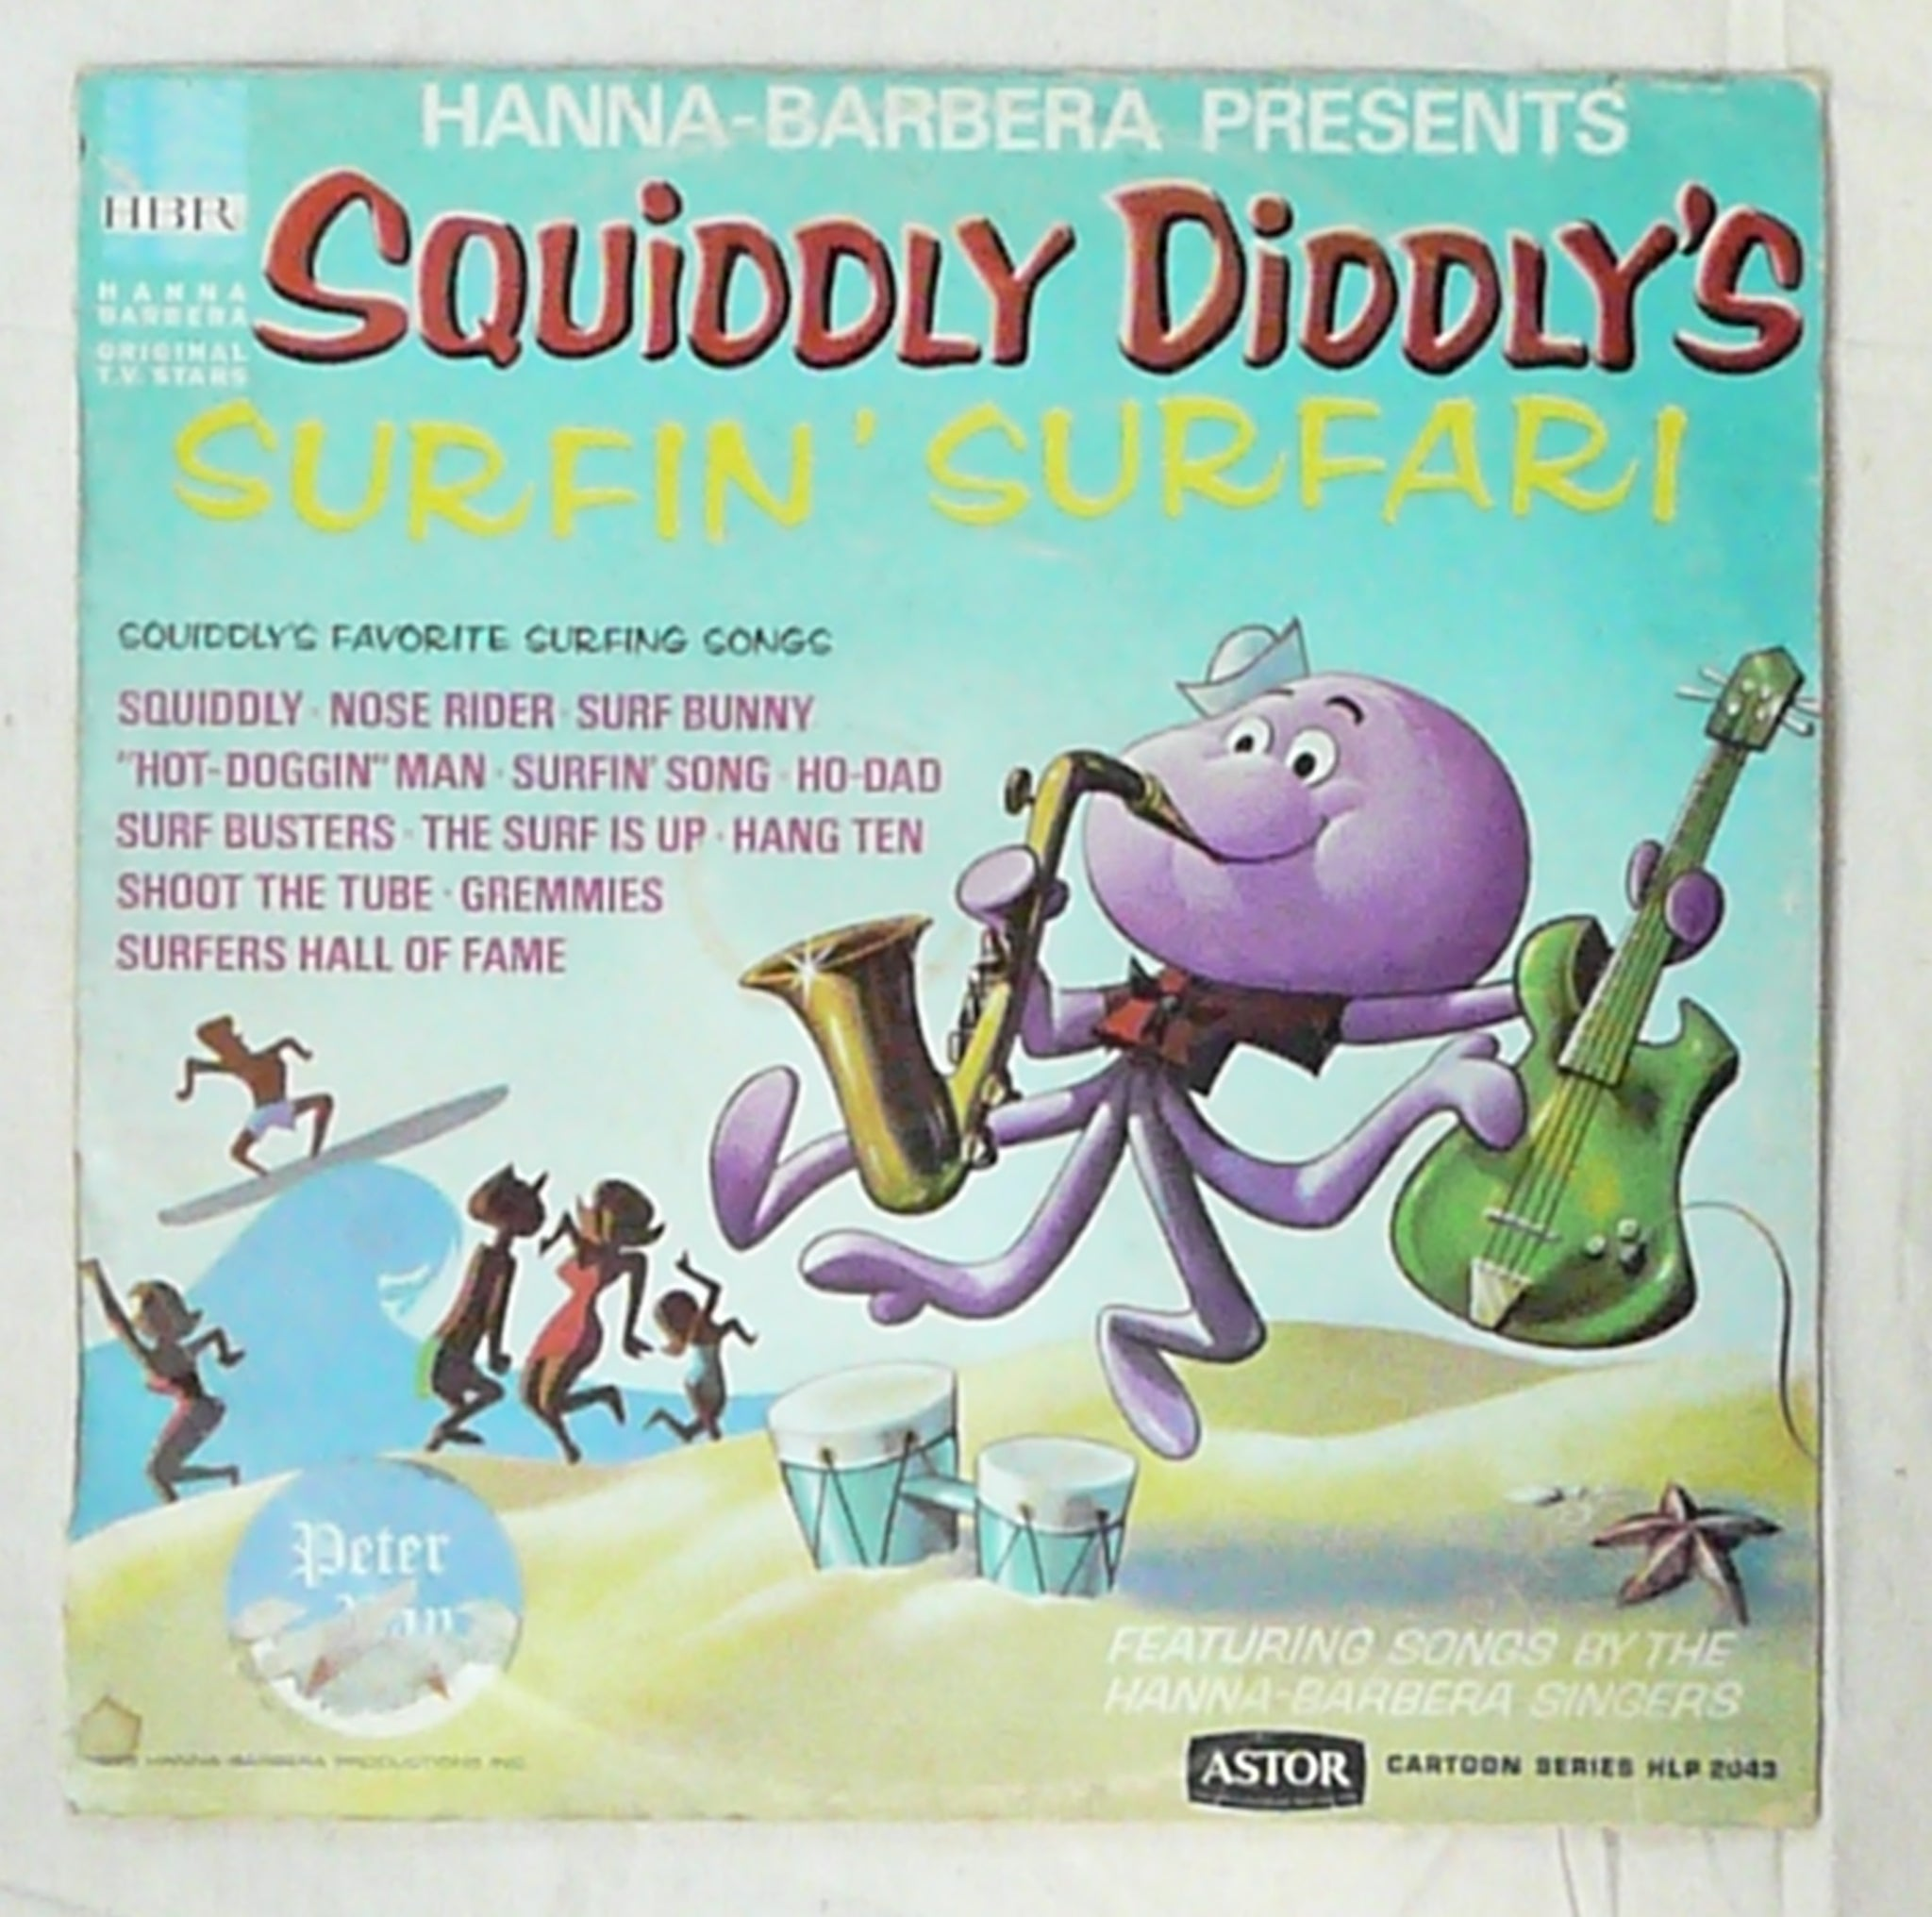 'Squiddly Diddly' Vinyl Album.